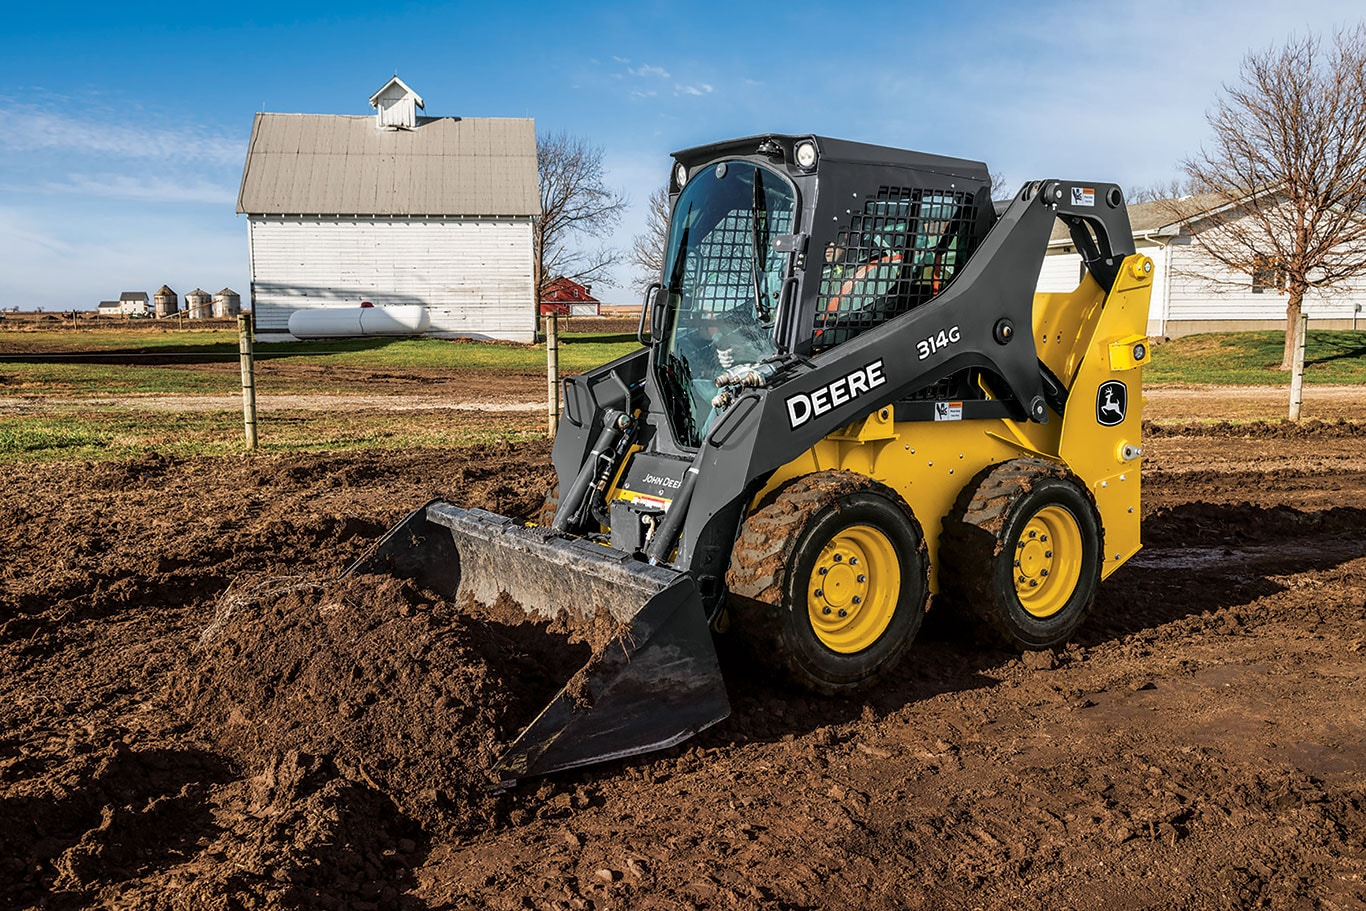 John Deere Skid Steer pushing dirt at a construction site.